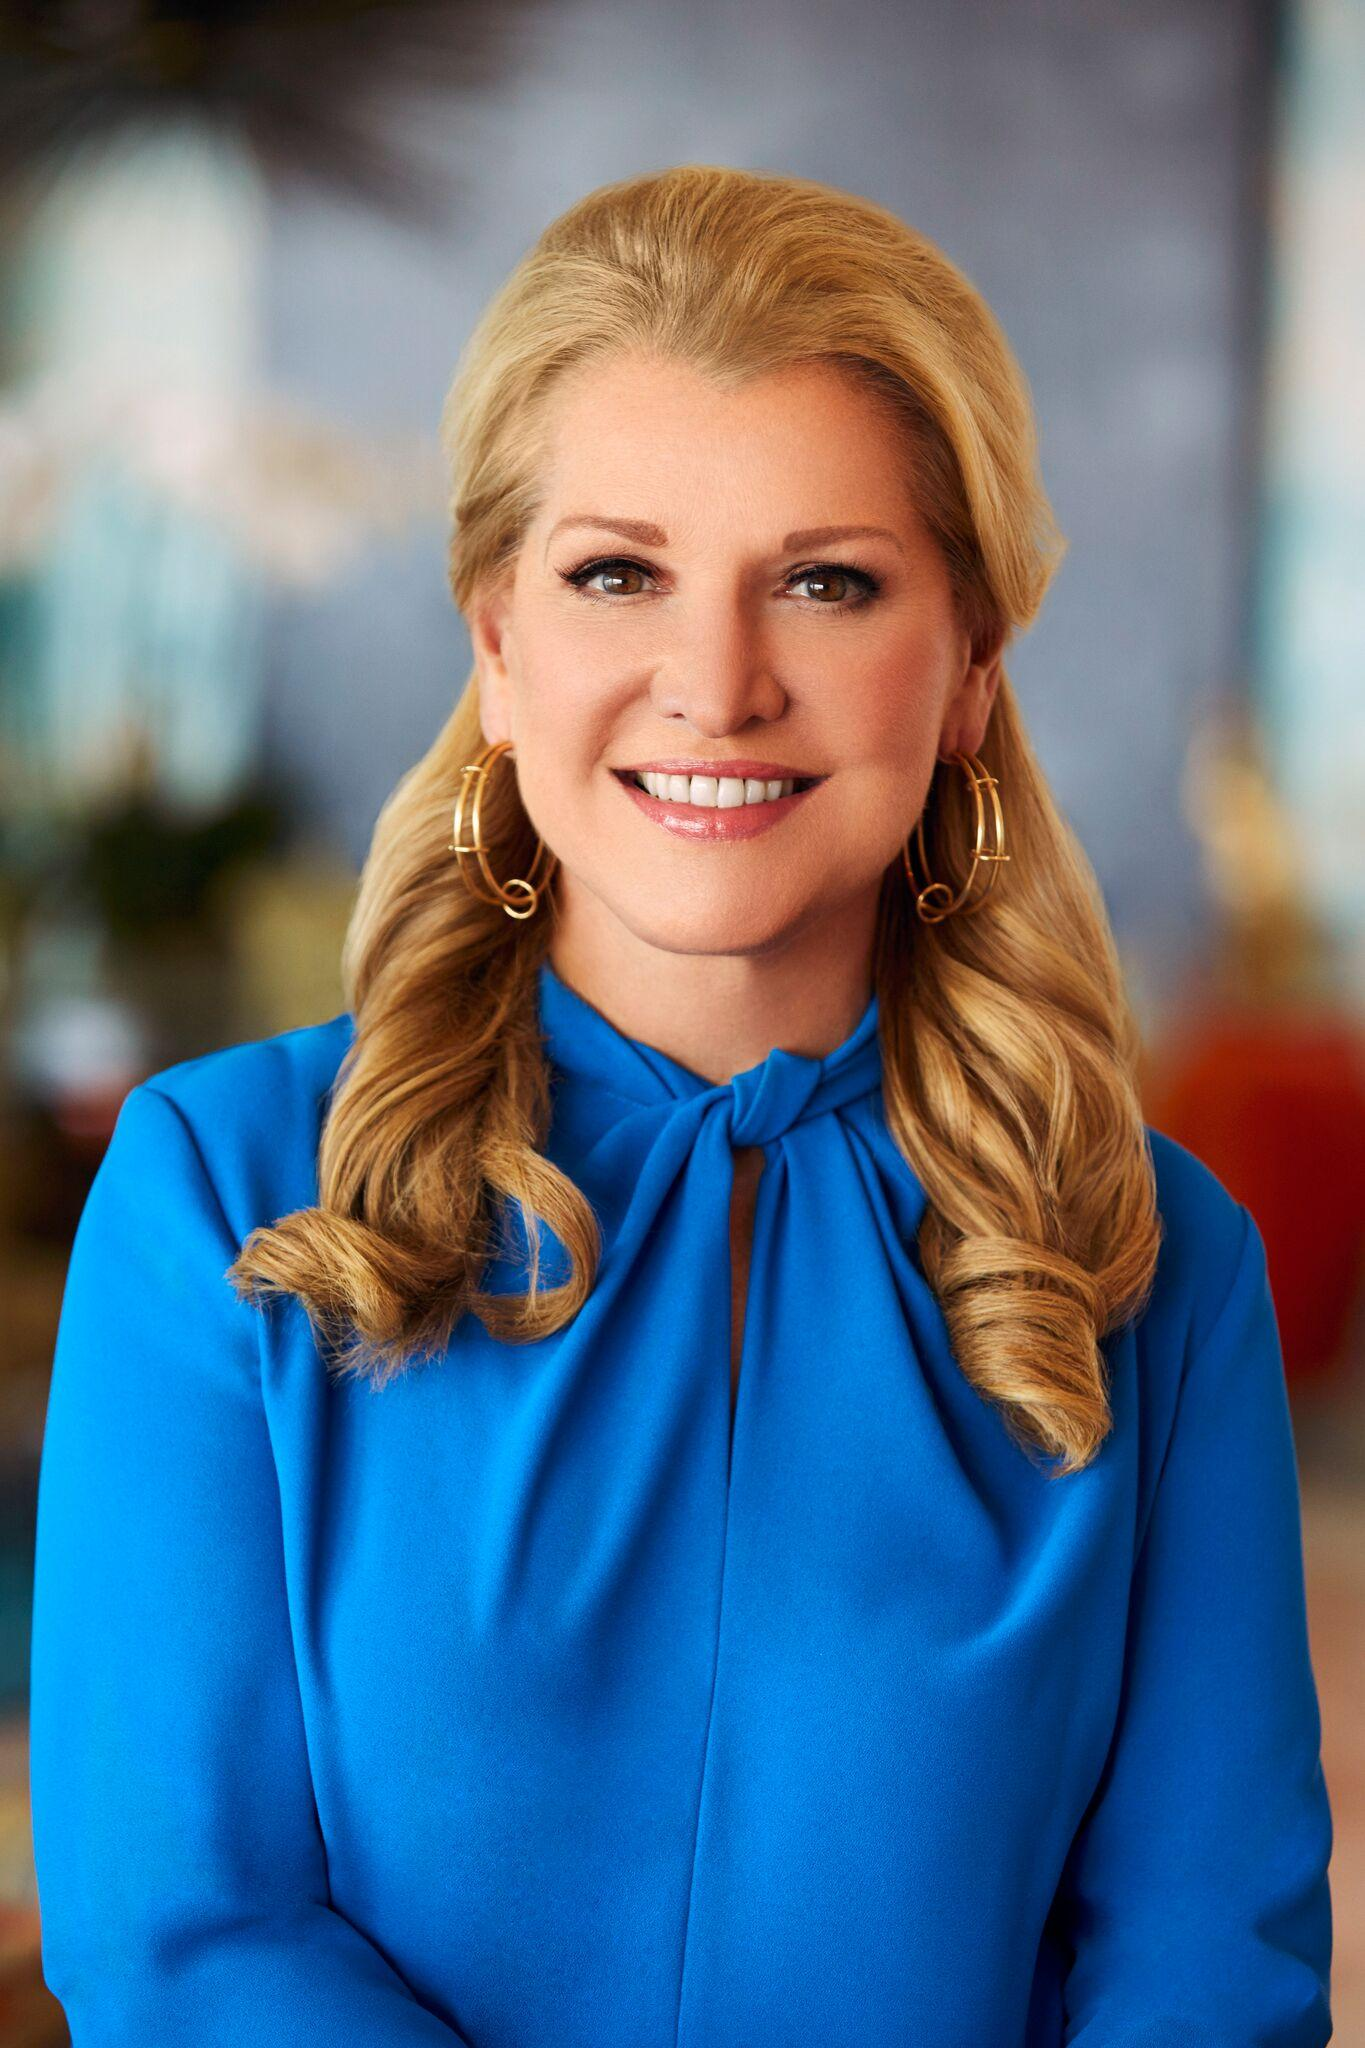 Weight Watchers President and CEO Mindy Grossman